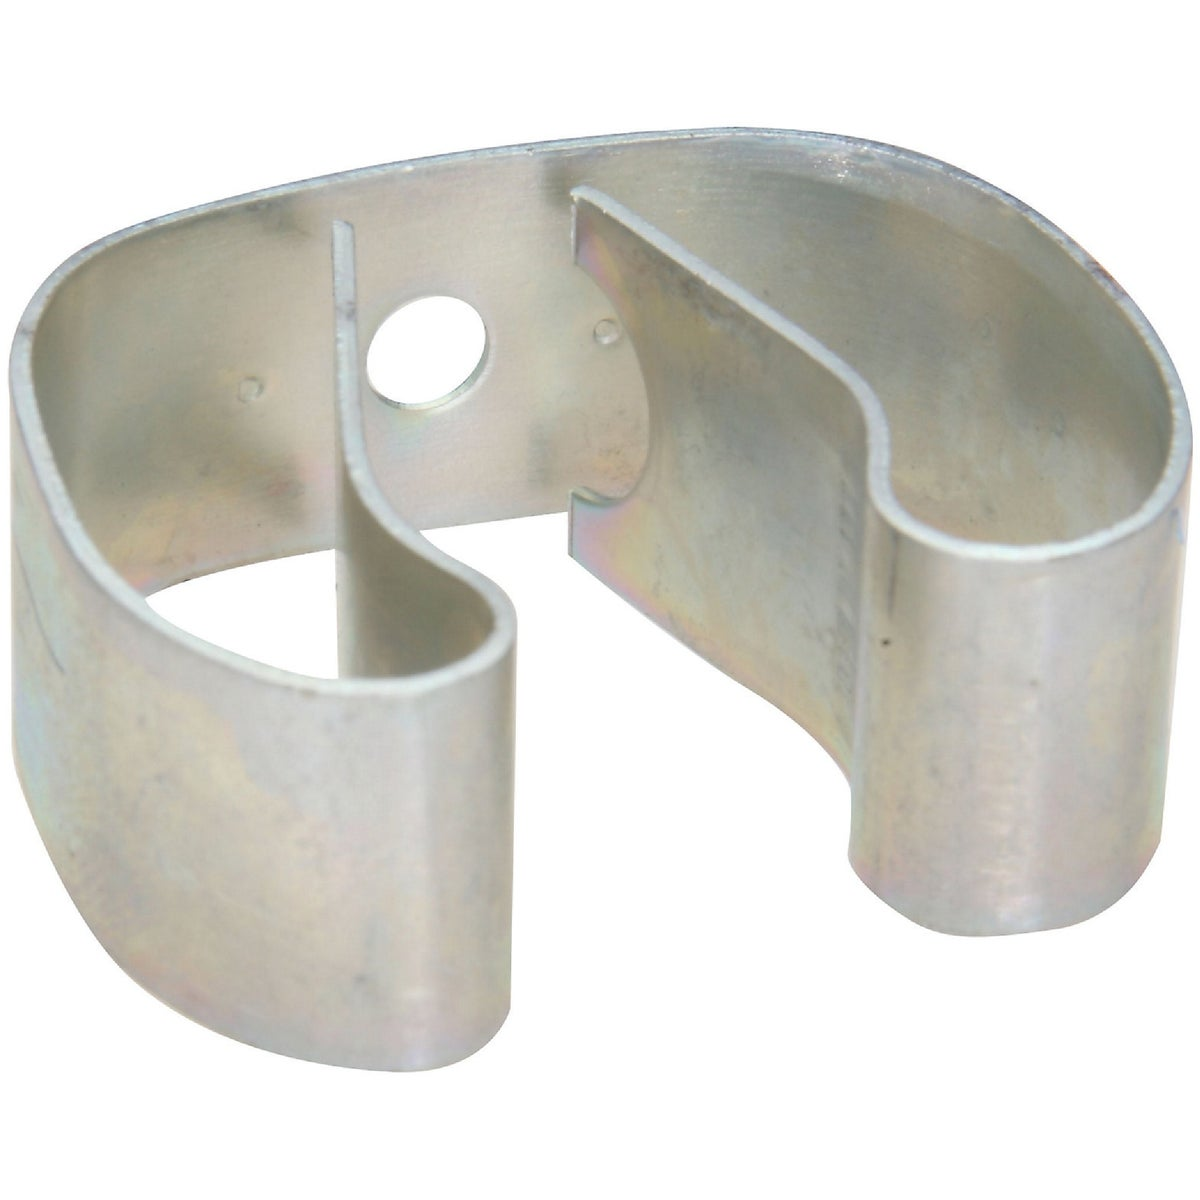 ZINC GRIPPER CLIPS - N189498 by National Mfg Co